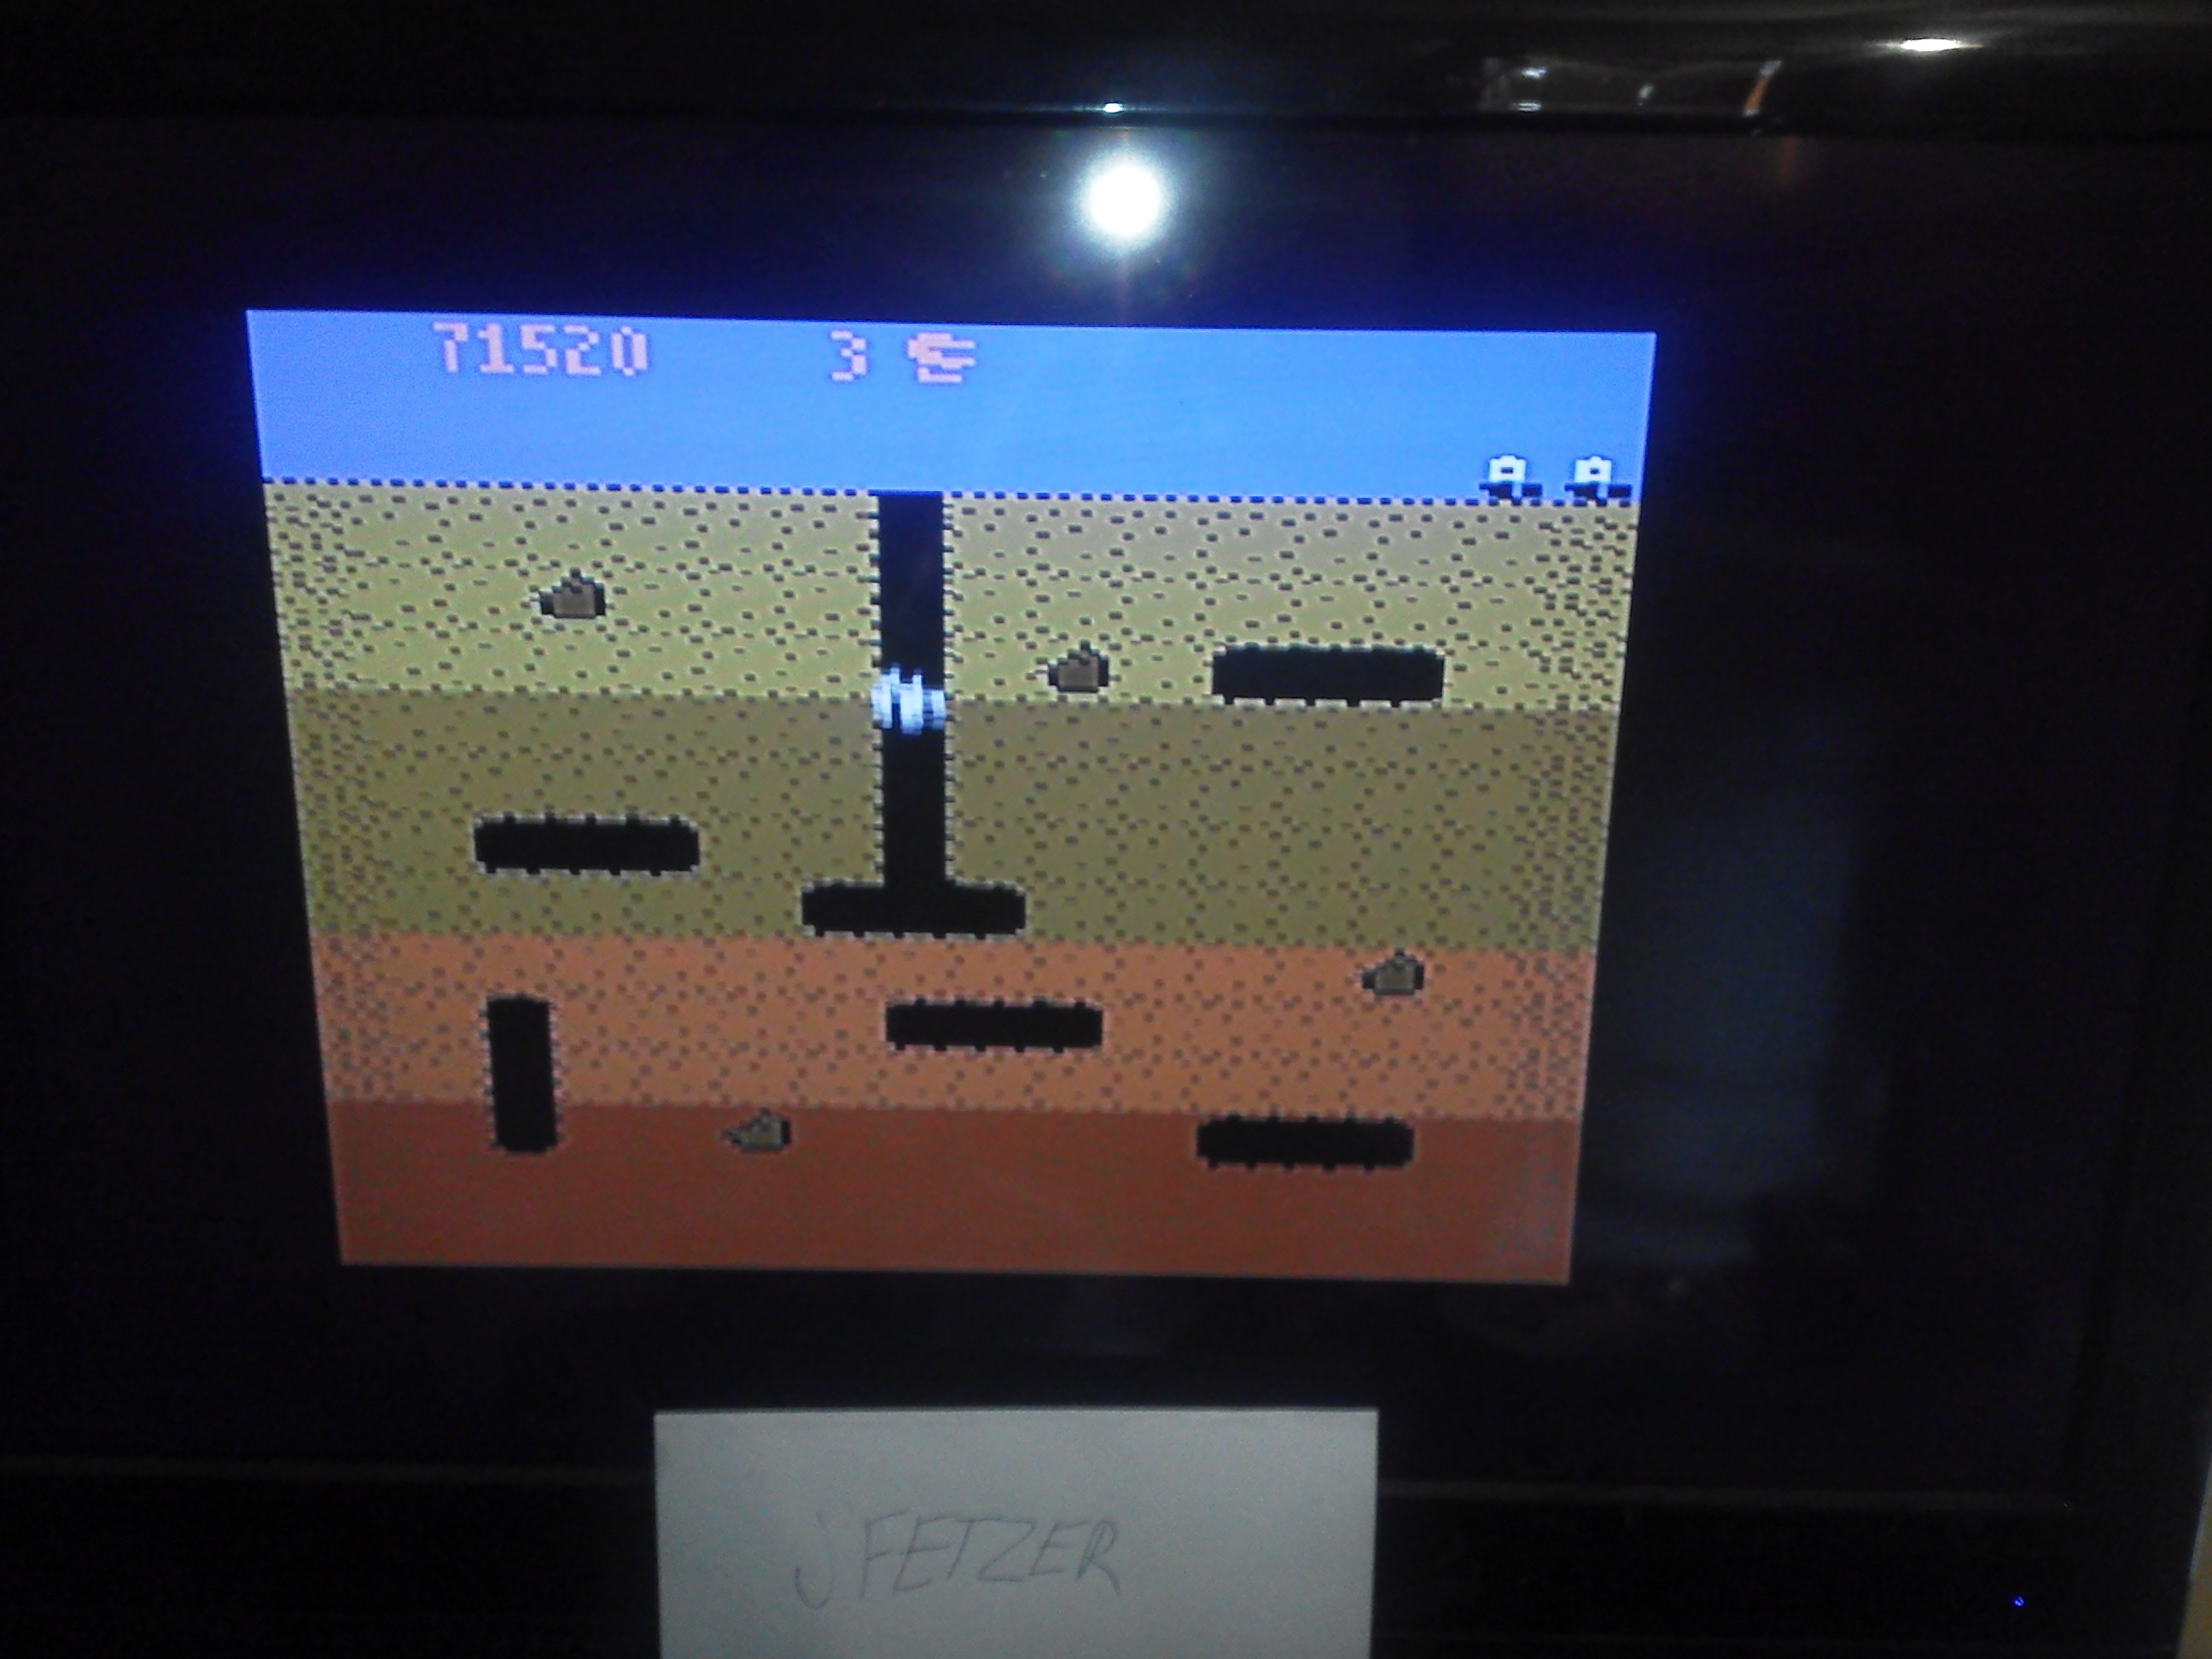 jfetzer: Dig Dug: Carrot Start (Atari 5200 Emulated) 71,520 points on 2014-11-27 23:58:06